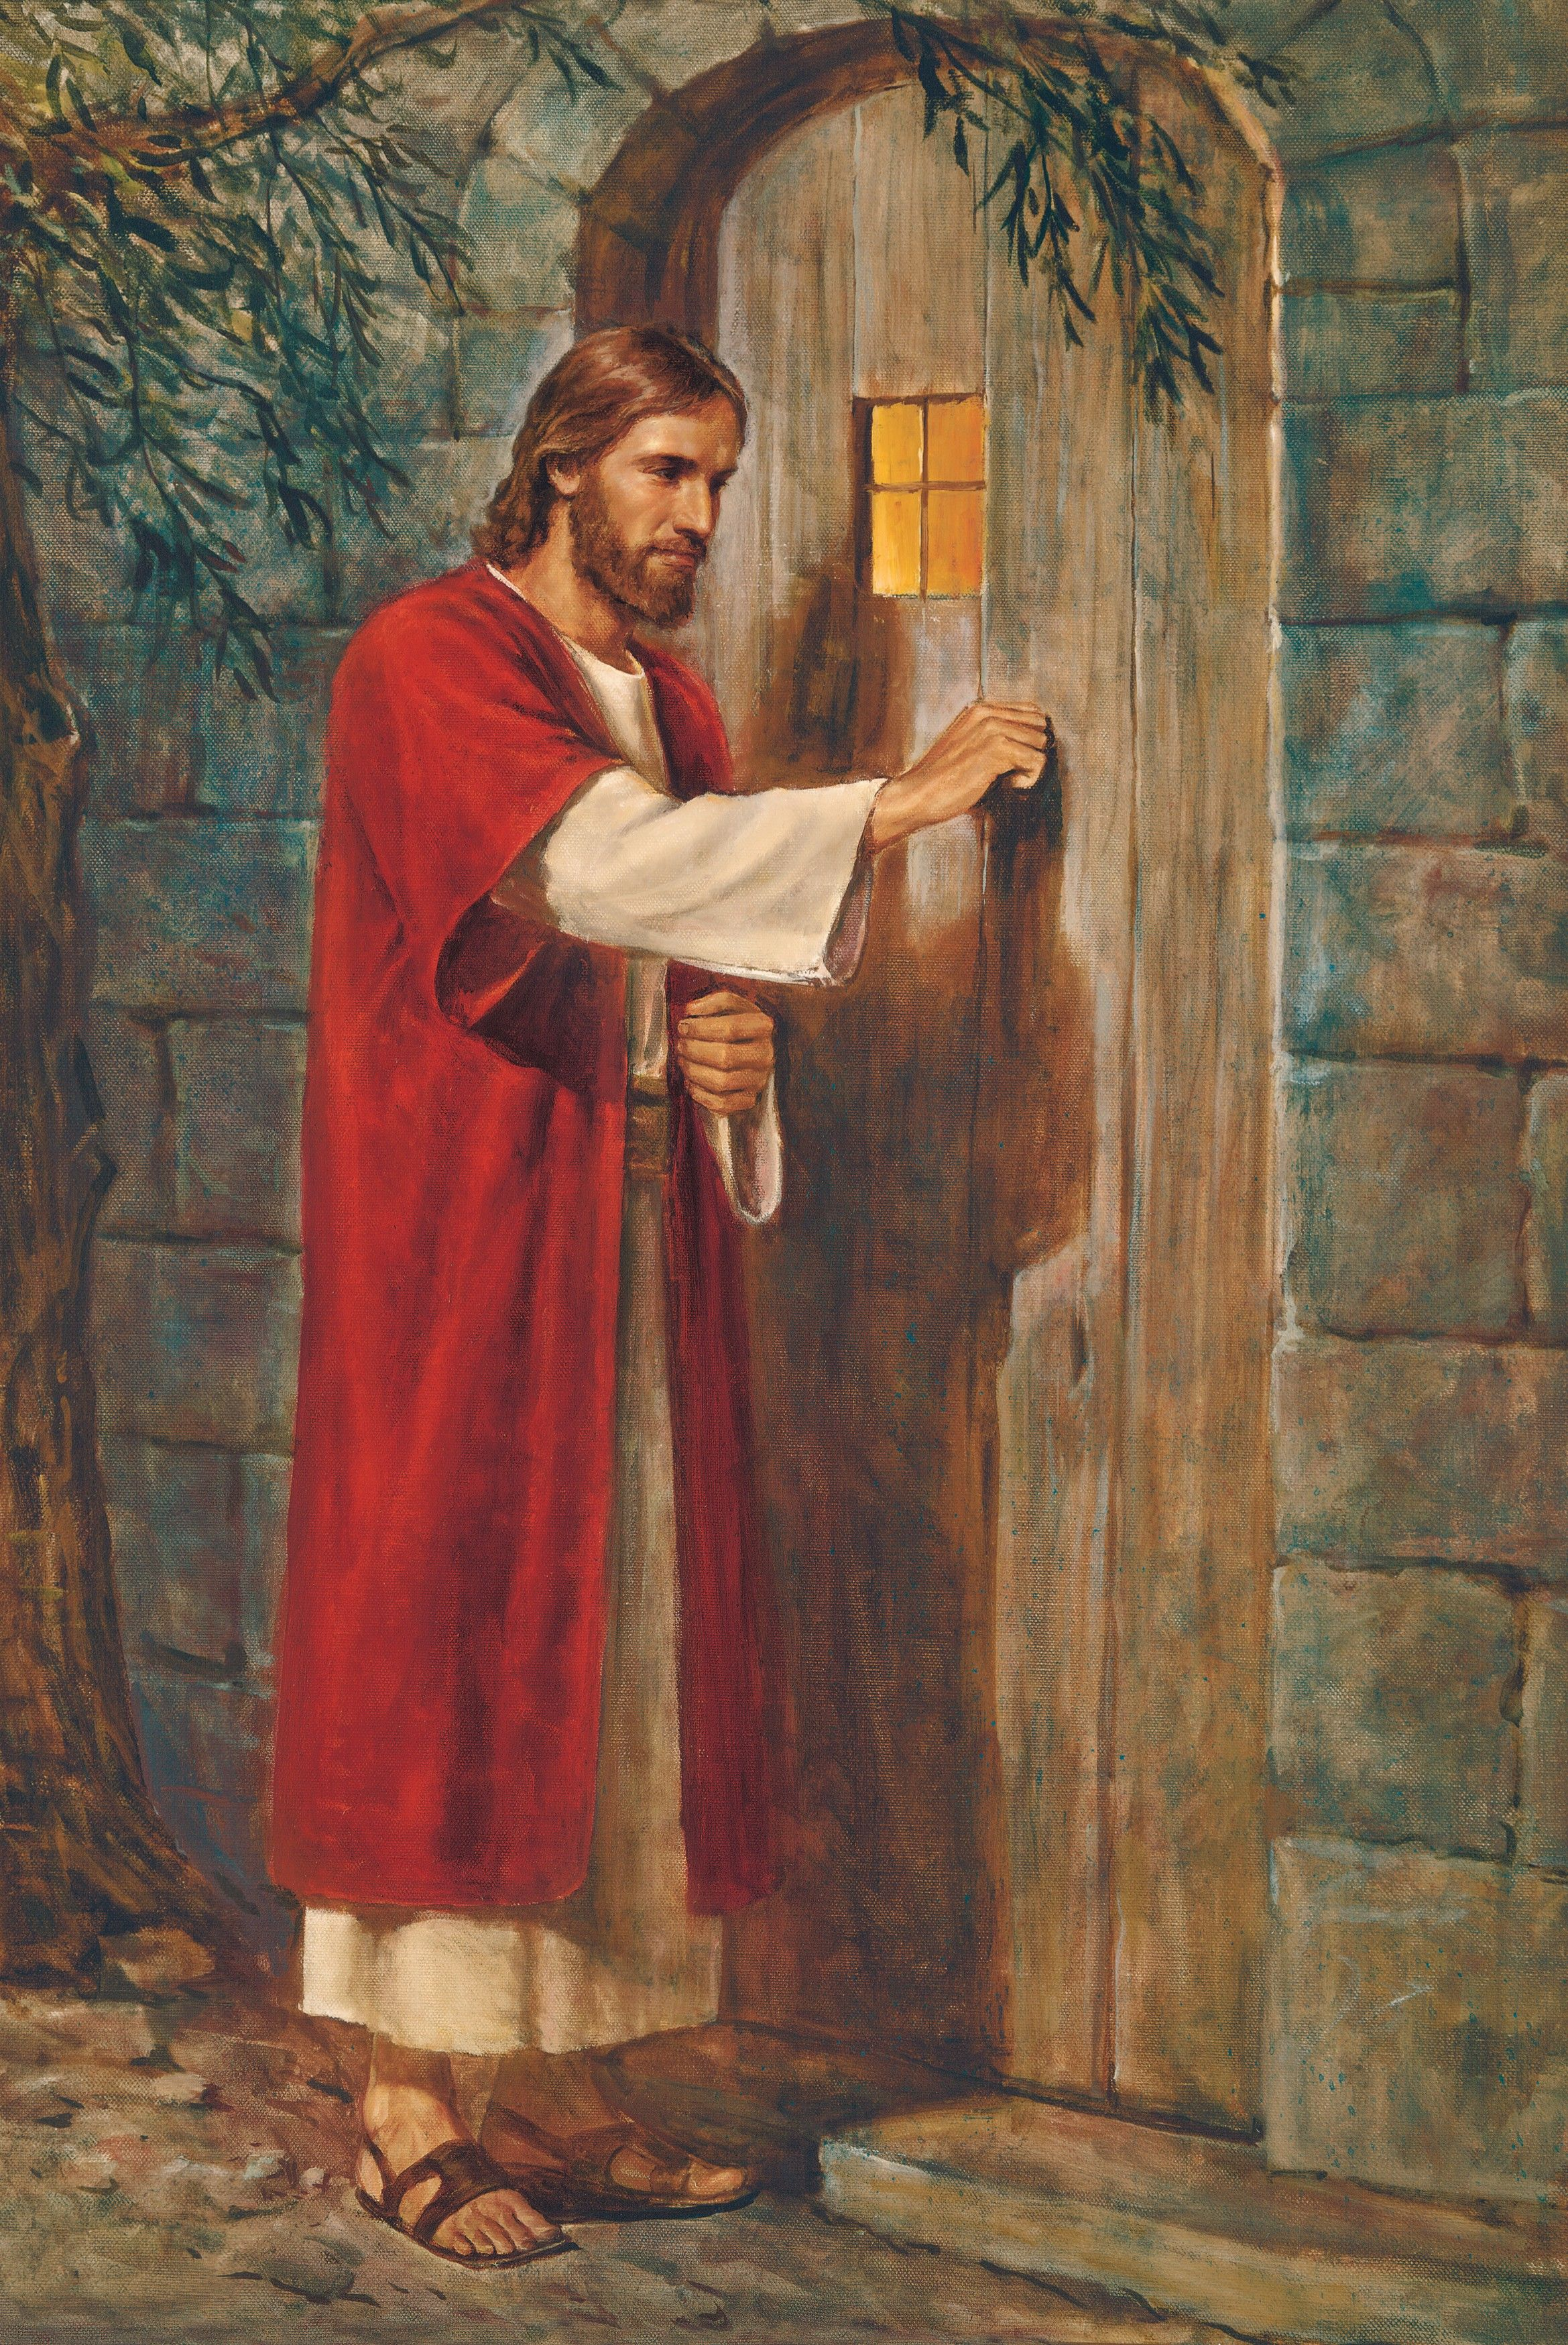 Jesus at the Door (Jesus Knocking at the Door), by Del Parson (62170); GAK 237; GAB 65; Primary manual 6-36; Revelation 3:20